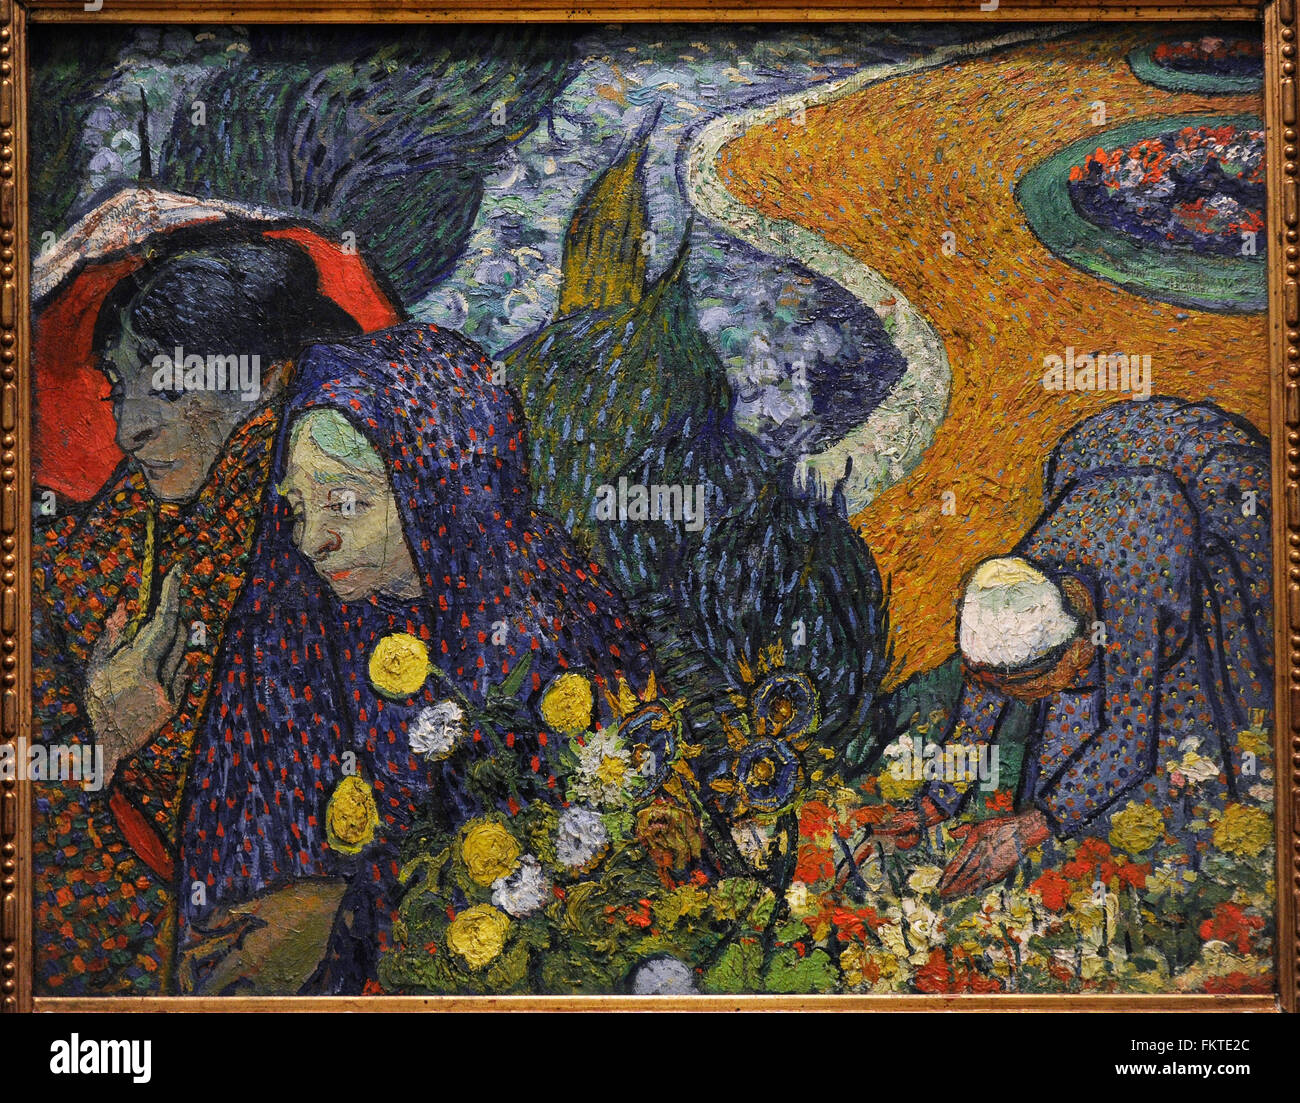 a biography of vincent van gogh a post impressionist painter Navigation top impressionist paintings vincent van gogh the son of a dutch clergyman, vincent van gogh (1853-1890) tried and failed at dealing art, teaching, and religious evangelism before.